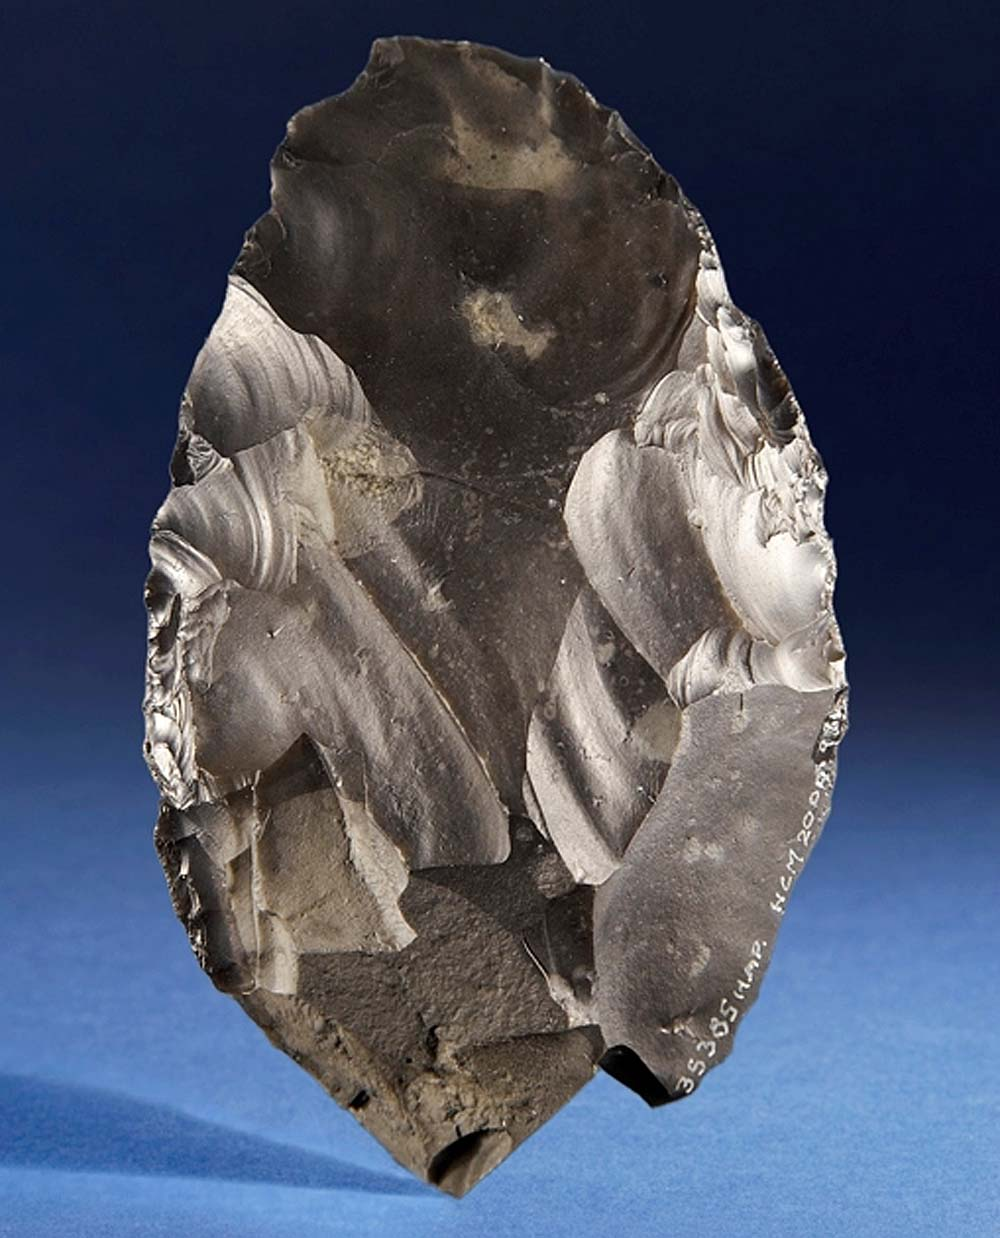 A photo of a beautifully carved flint handaxe